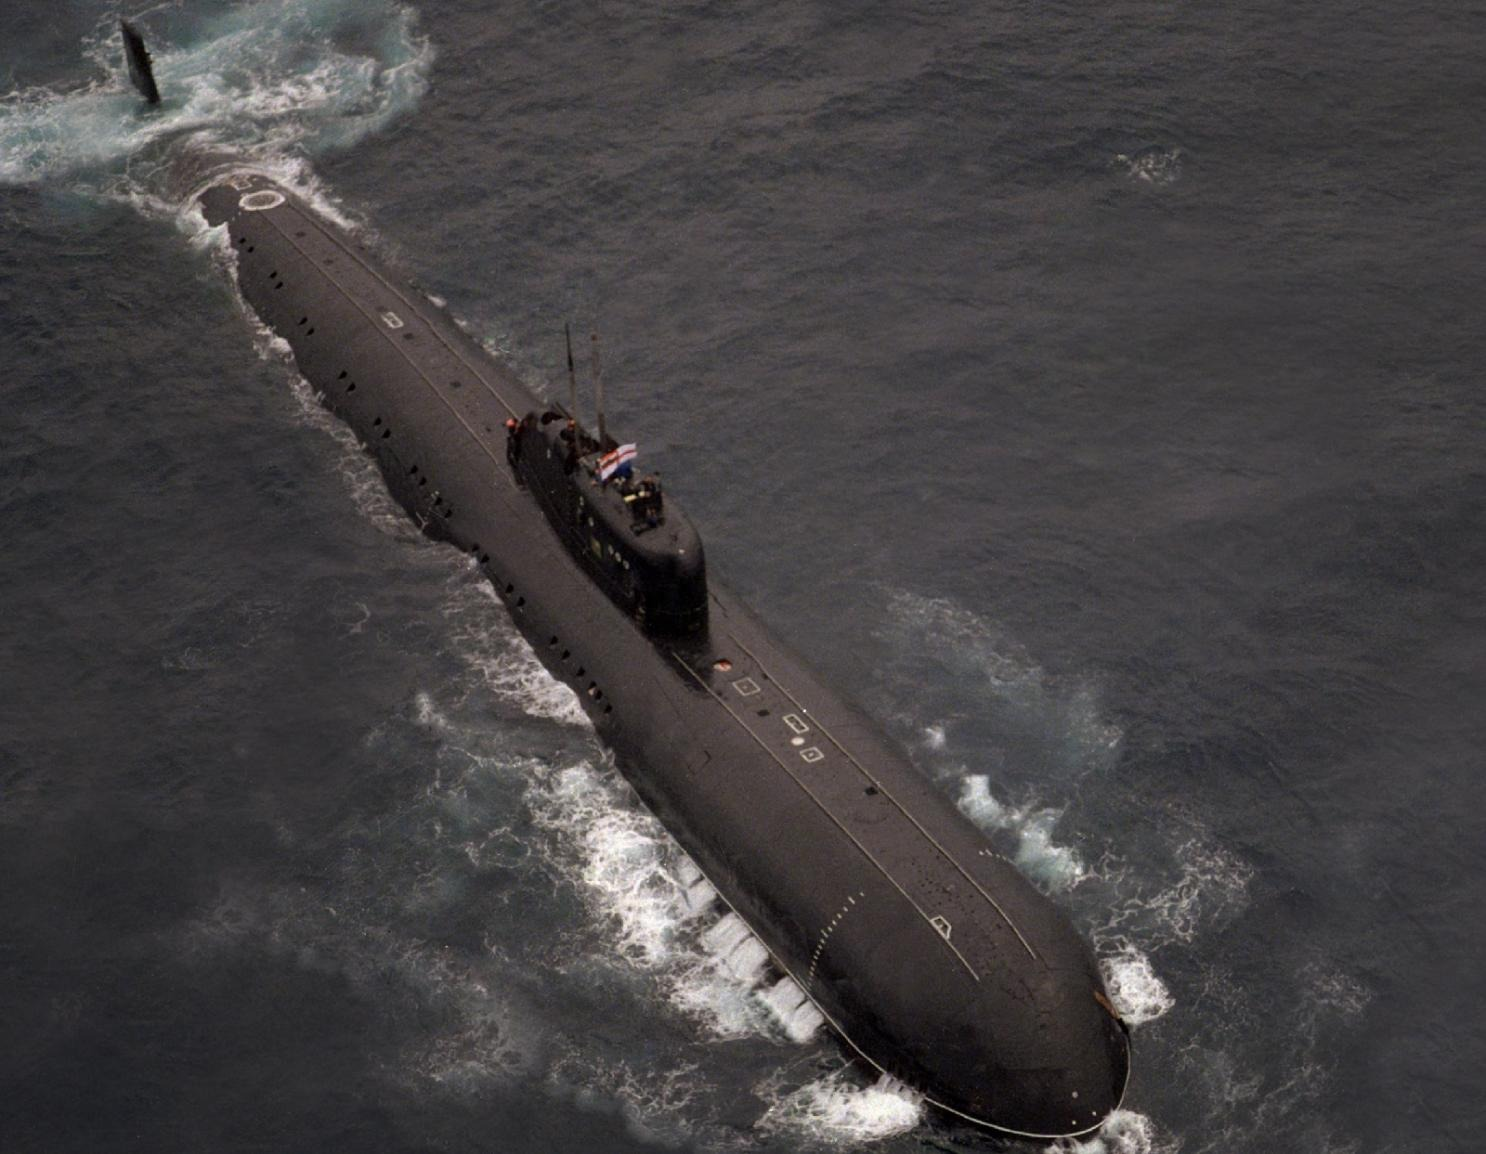 This Russian Nuclear Submarine Made Scary History by Sinking Twice - Warrior Maven